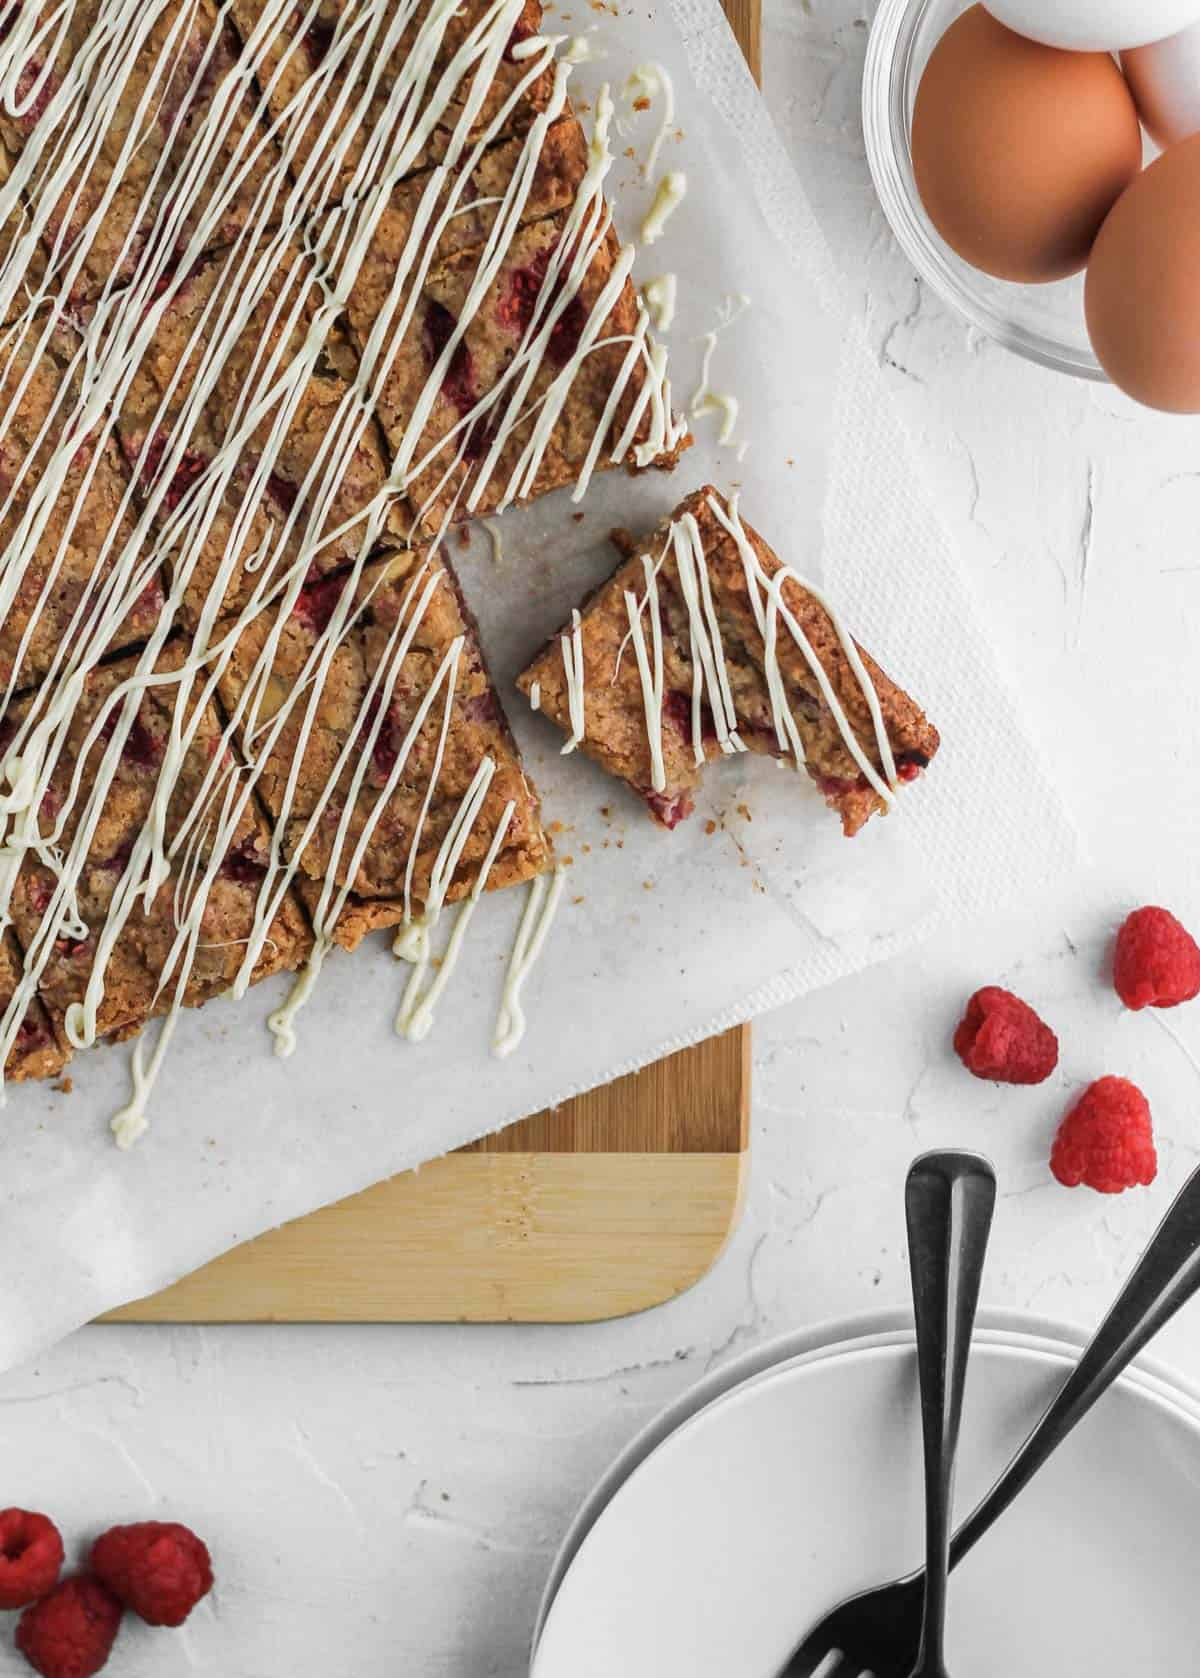 Blondie bars drizzled in white chocolate with a bite taken out on top of a wooden cutting board and with raspberries on the side.